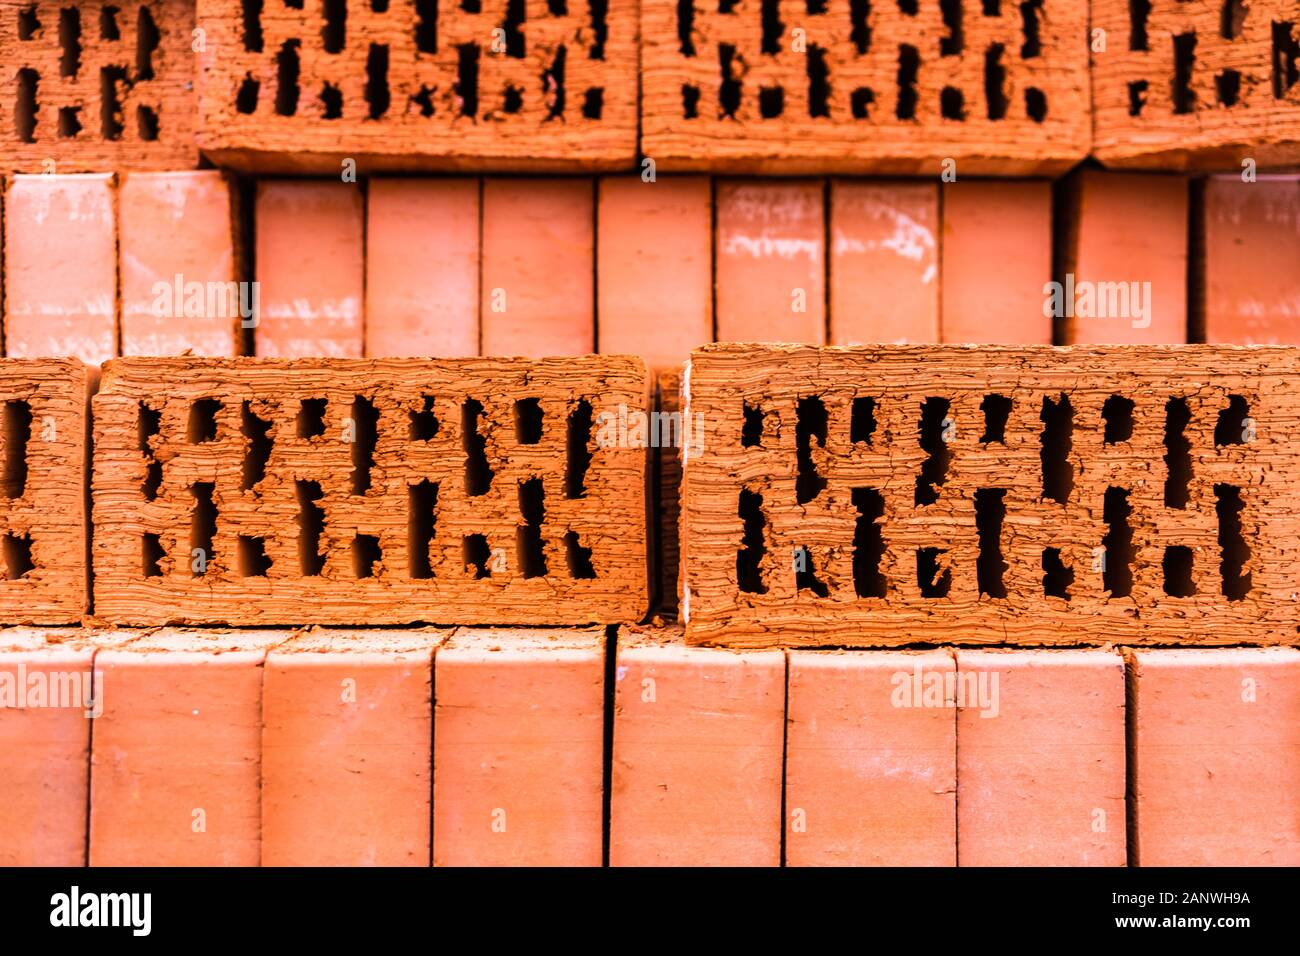 Pile of bricks texture wallpaper. Red bricks pile stacked for construction Stock Photo